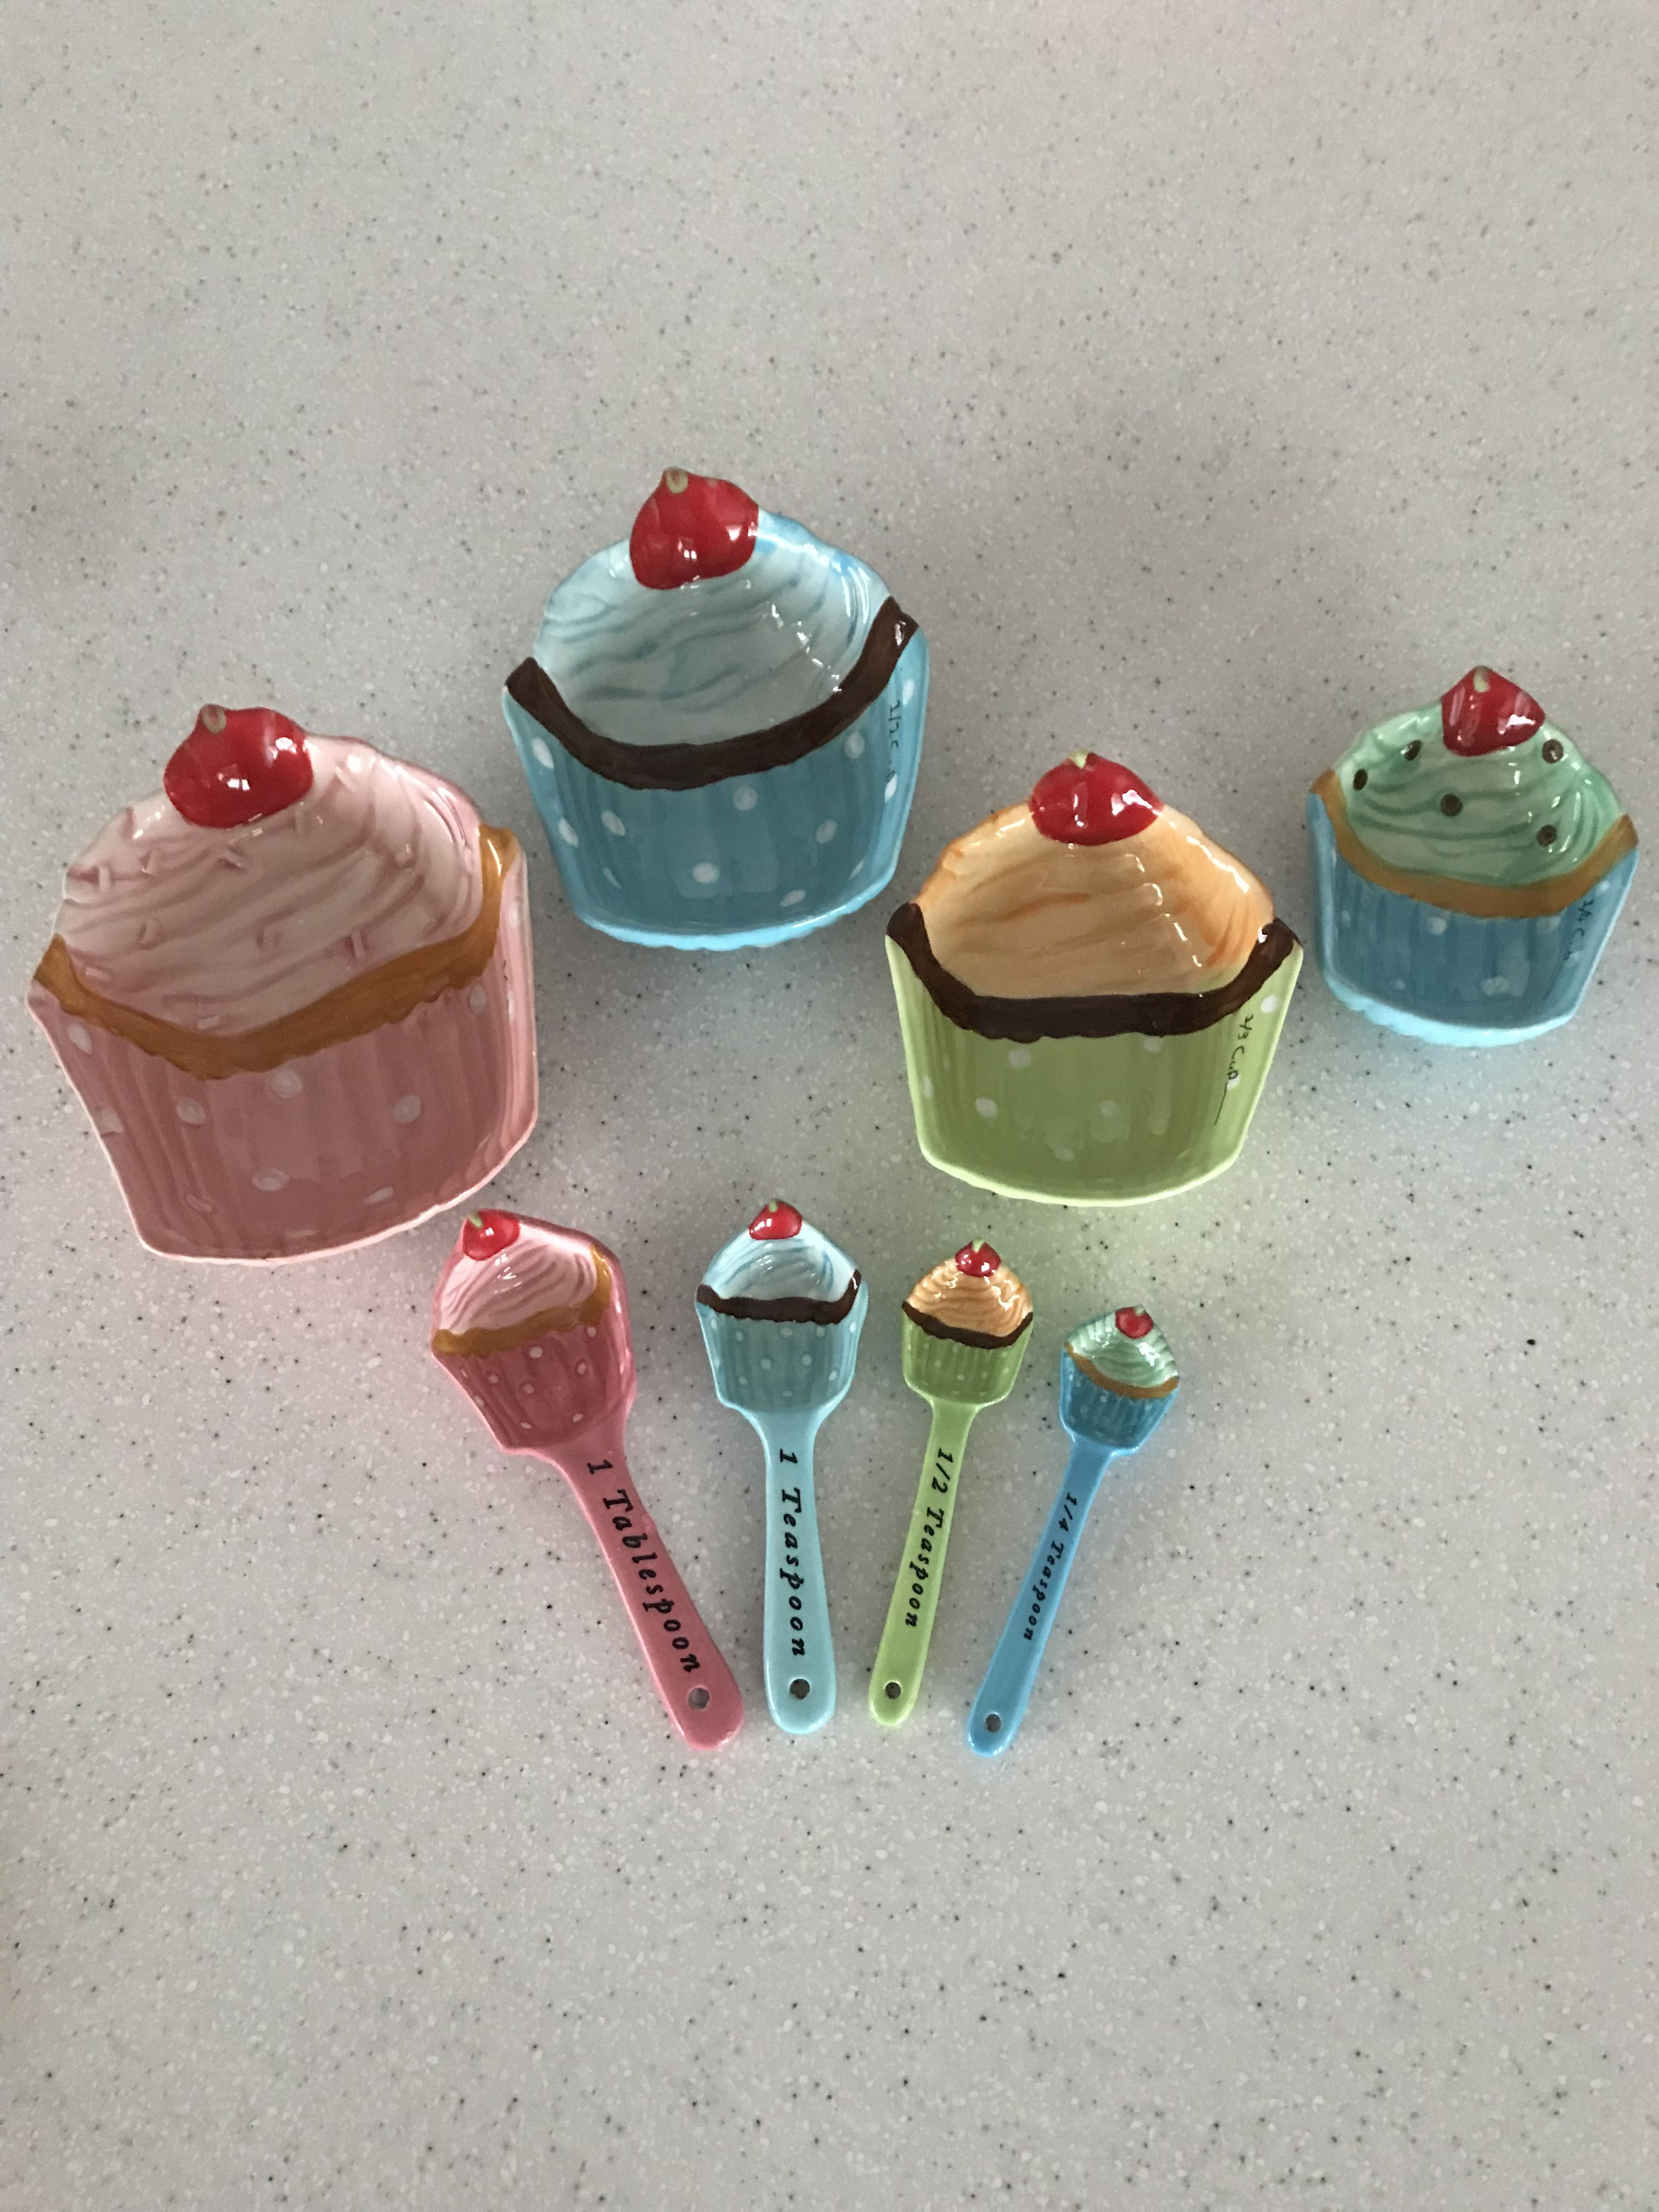 Cupcakes And Cartwheels Measuring Cups Spoons